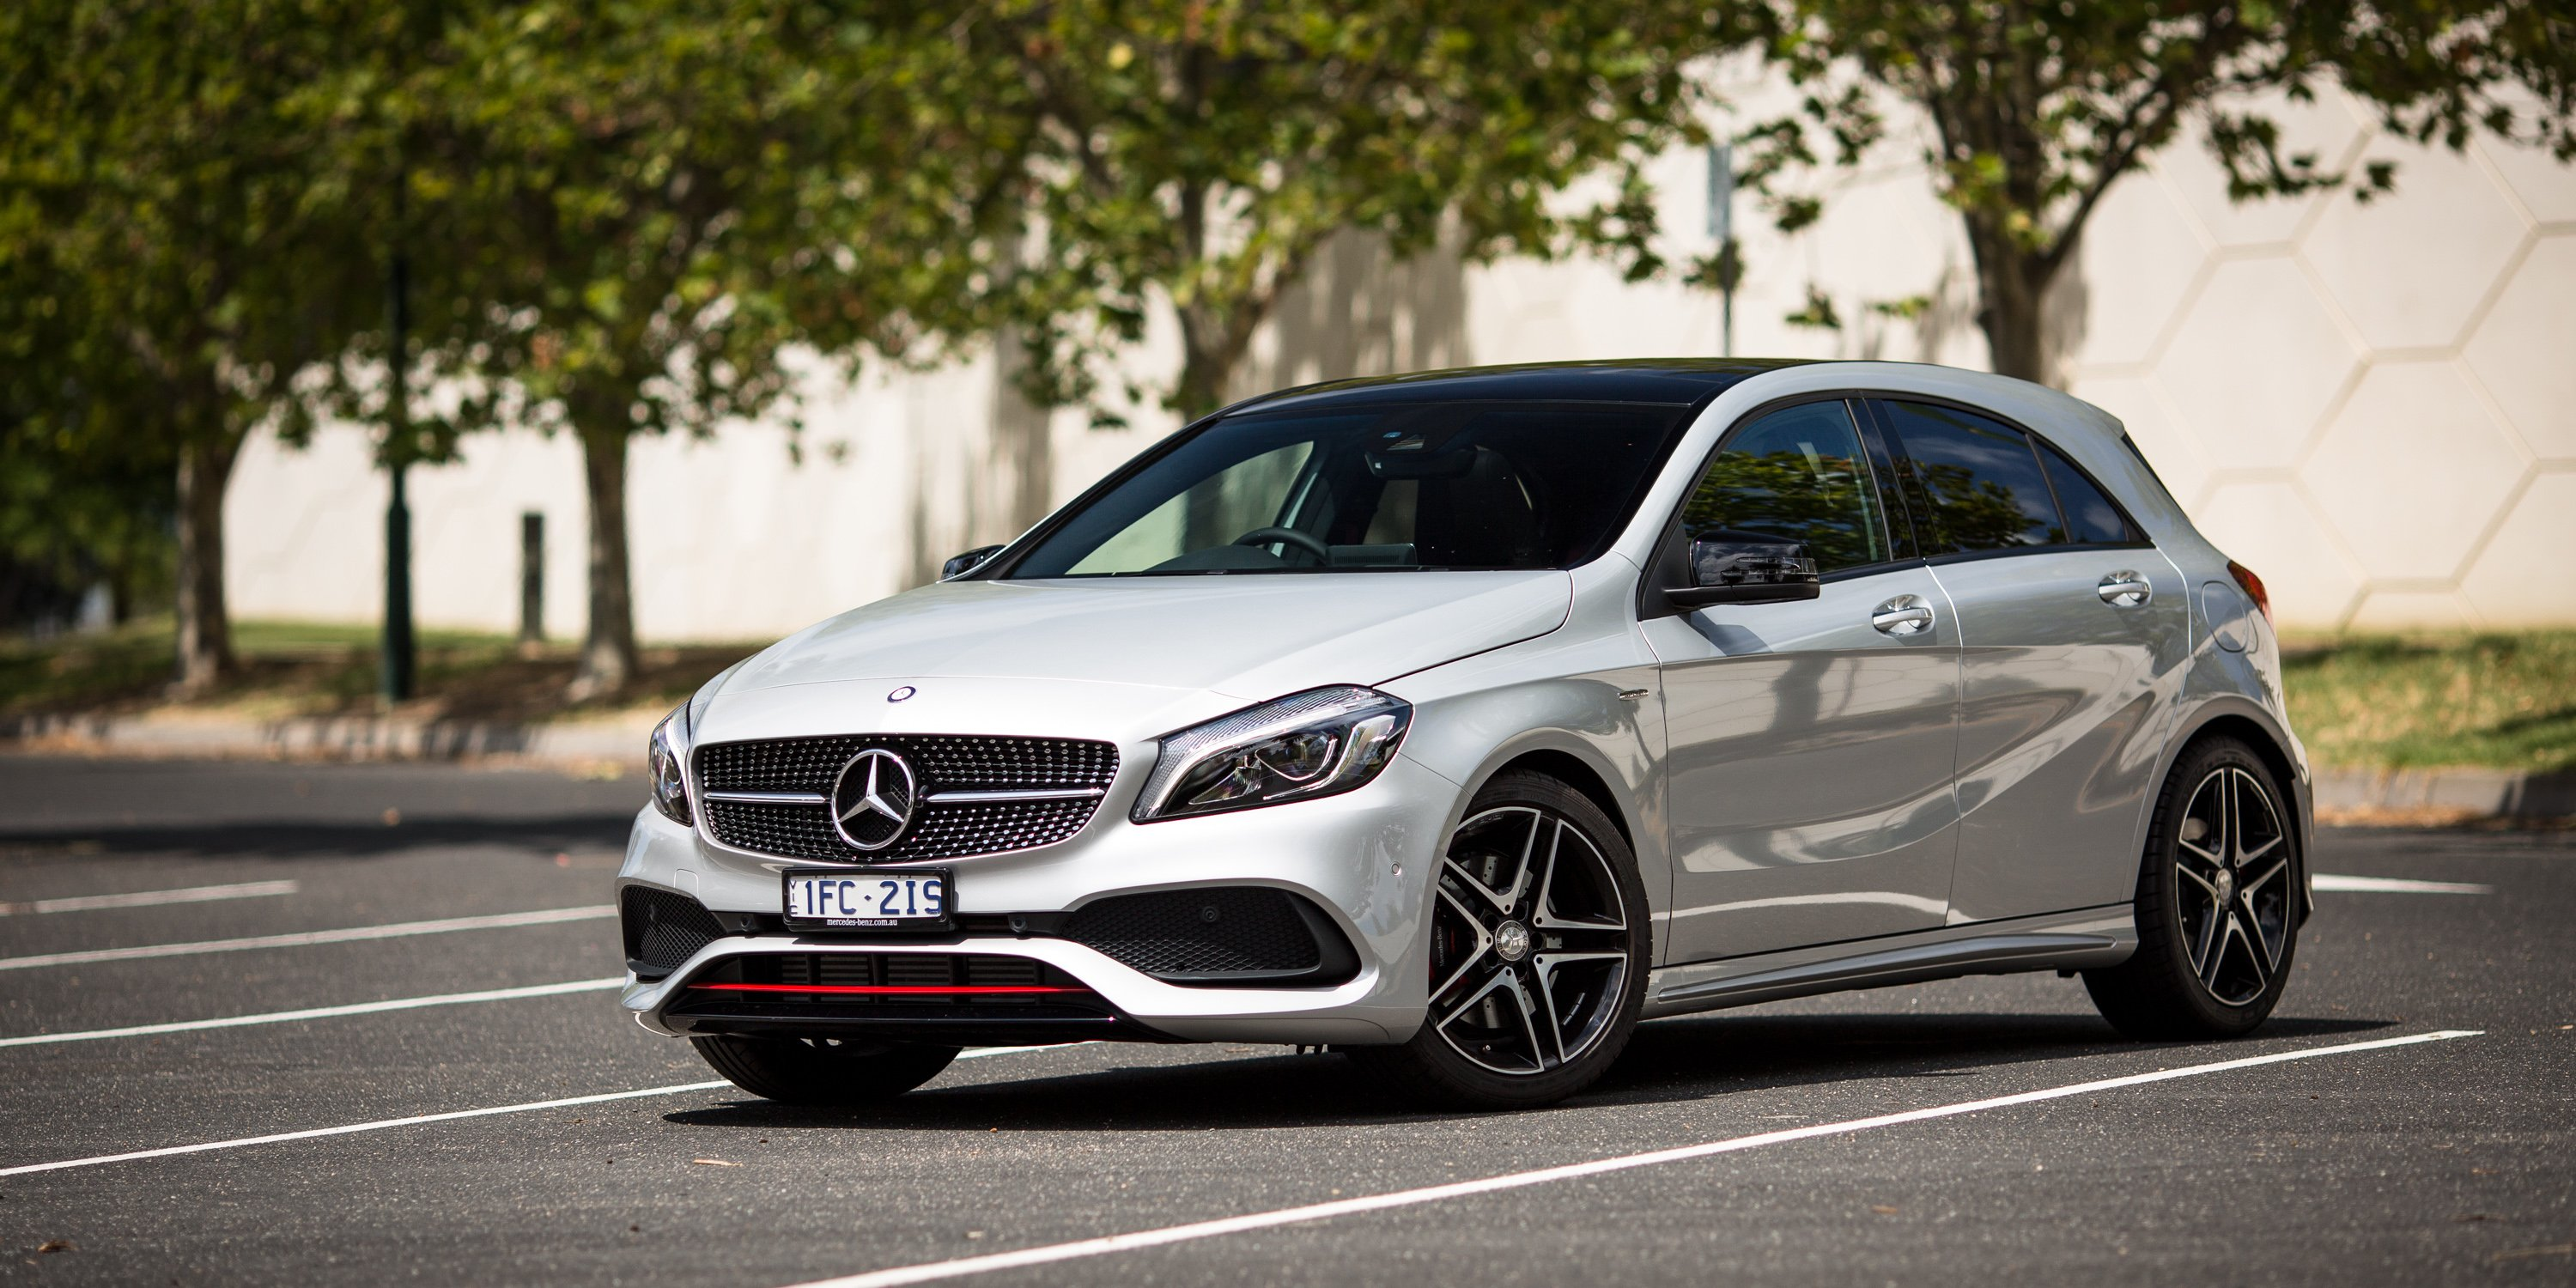 2016 mercedes benz a class review photos caradvice for Mercedes benz in annapolis